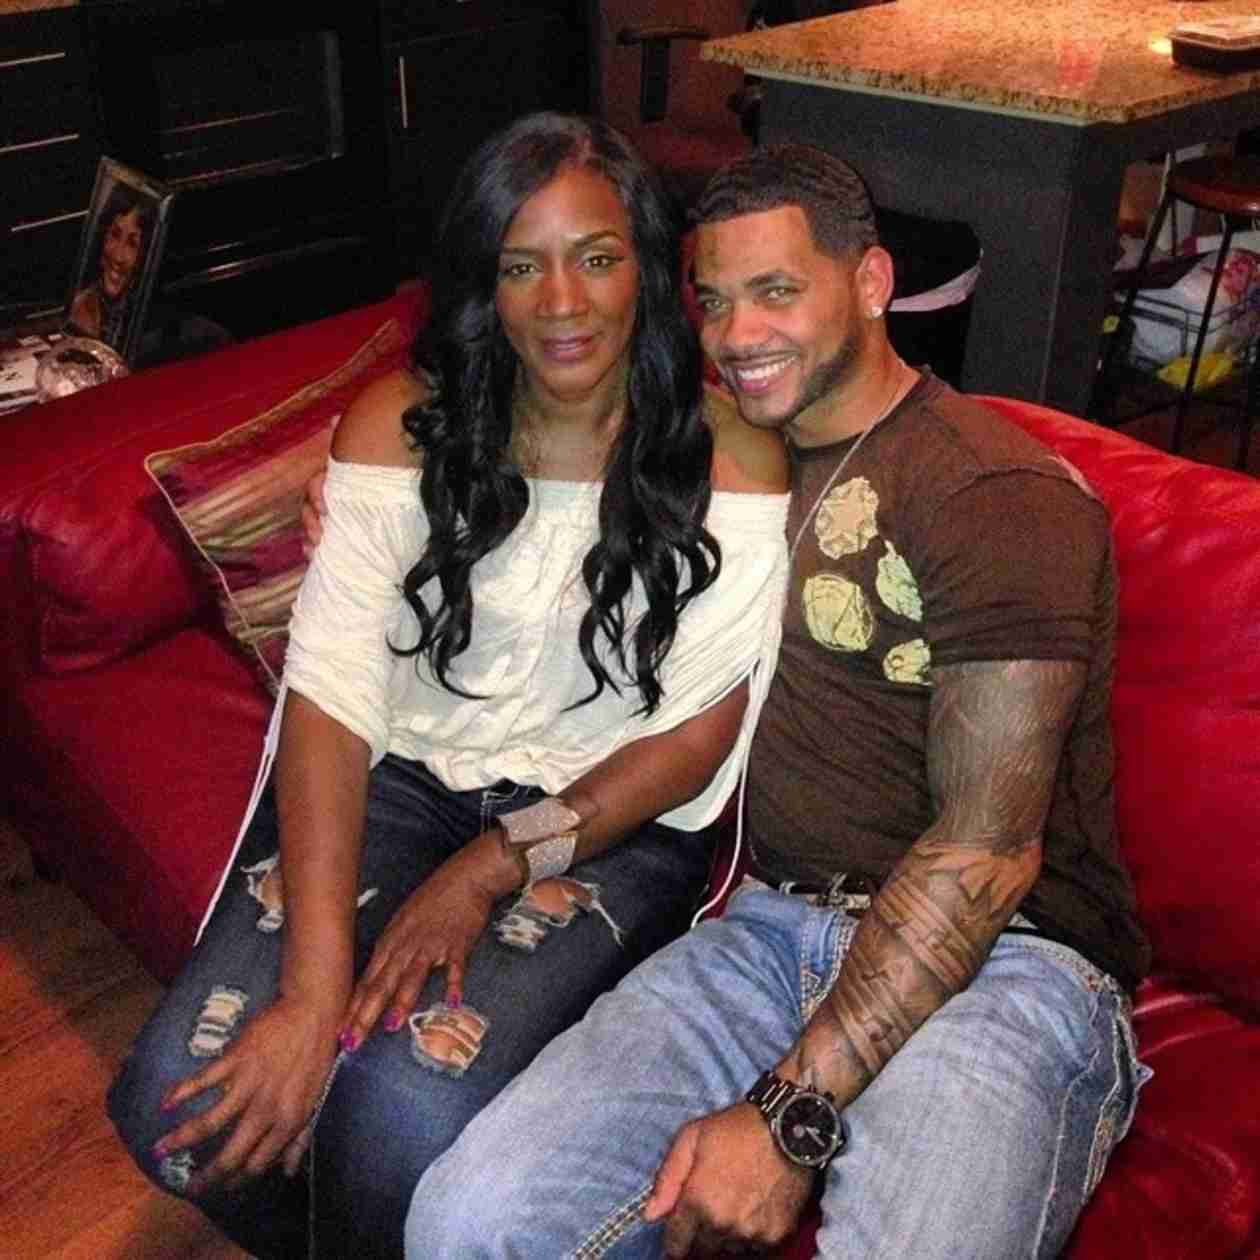 Momma Dee Tells Fans to Back Off After Posing With Andrea Kelly's Ex Husband